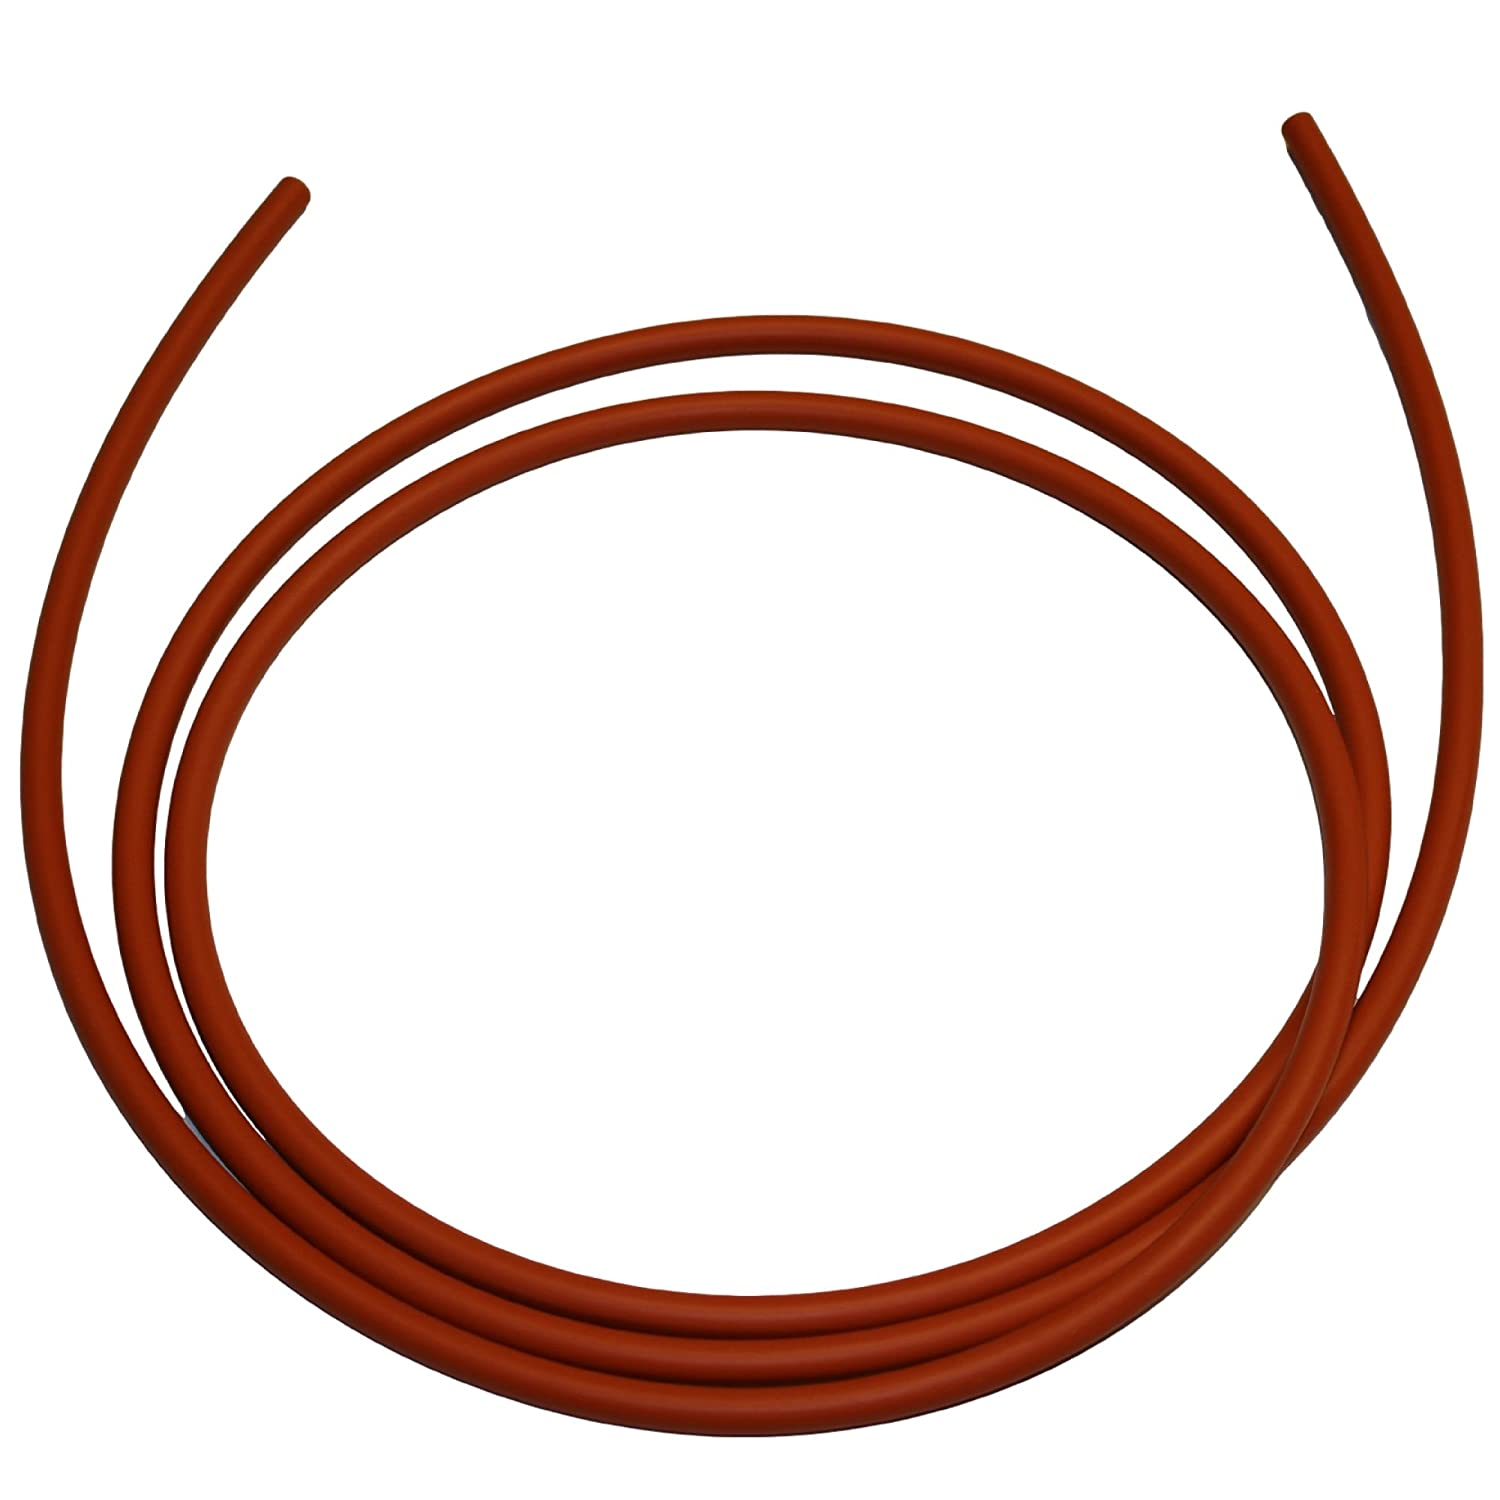 Black 0.250 Thickness .250 Buna-N O-Ring Cord Stock 70A Durometer 1//4 Actual 10 Piece